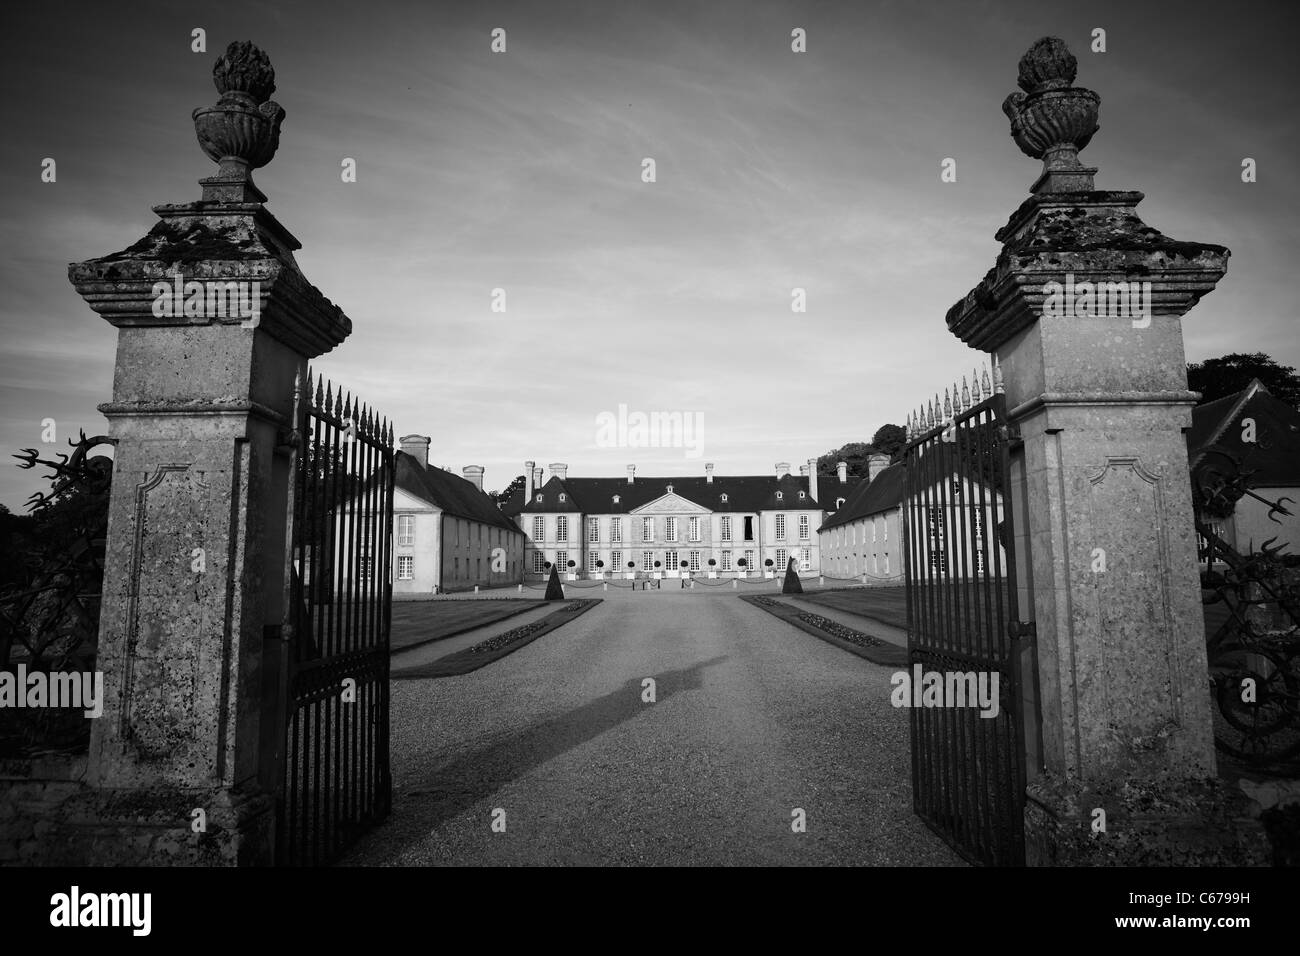 Driveway & gate to Château d'Audrieu and the surrounding grounds, Bayeux, Normandy - Stock Image